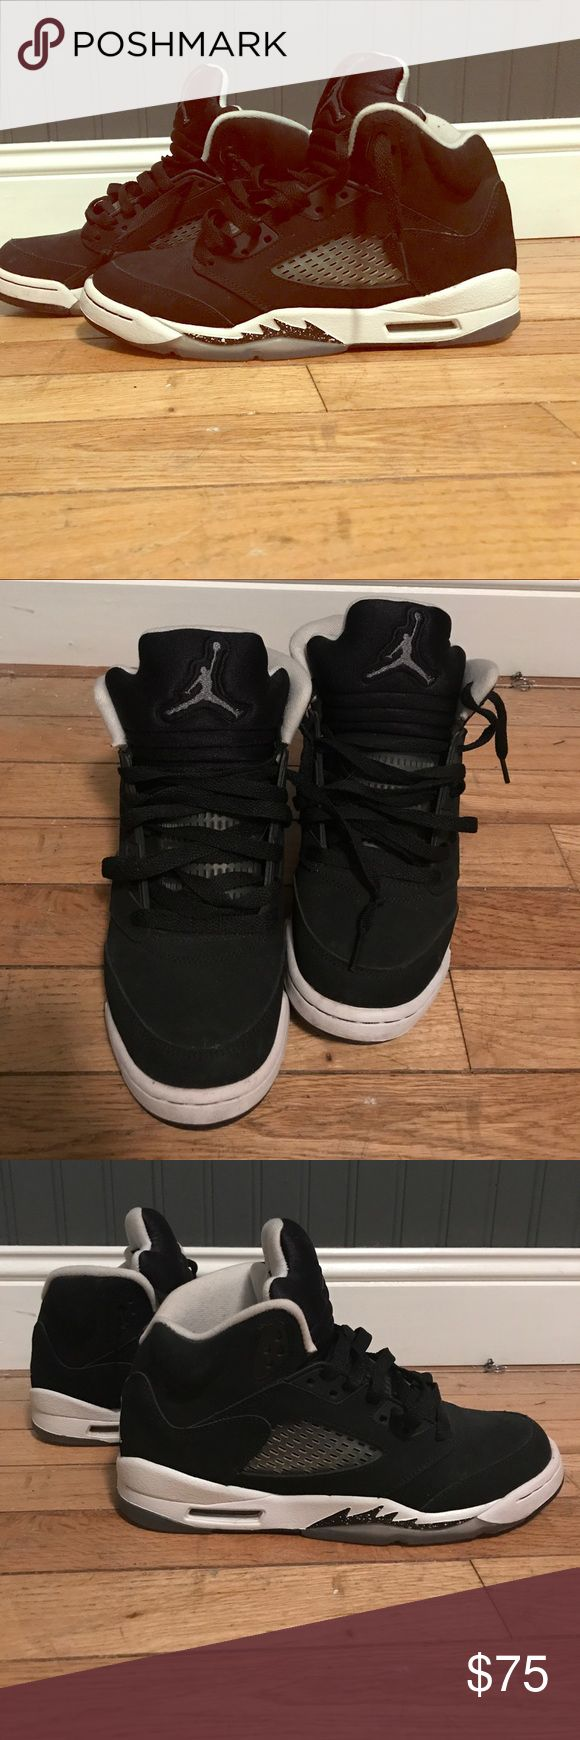 """Air Jordan """"Oreo"""" shoes The Jordan """"Oreos"""" worn a couple of times in great condition and maintained very well. Size 6 in boys. Jordan Shoes Sneakers"""